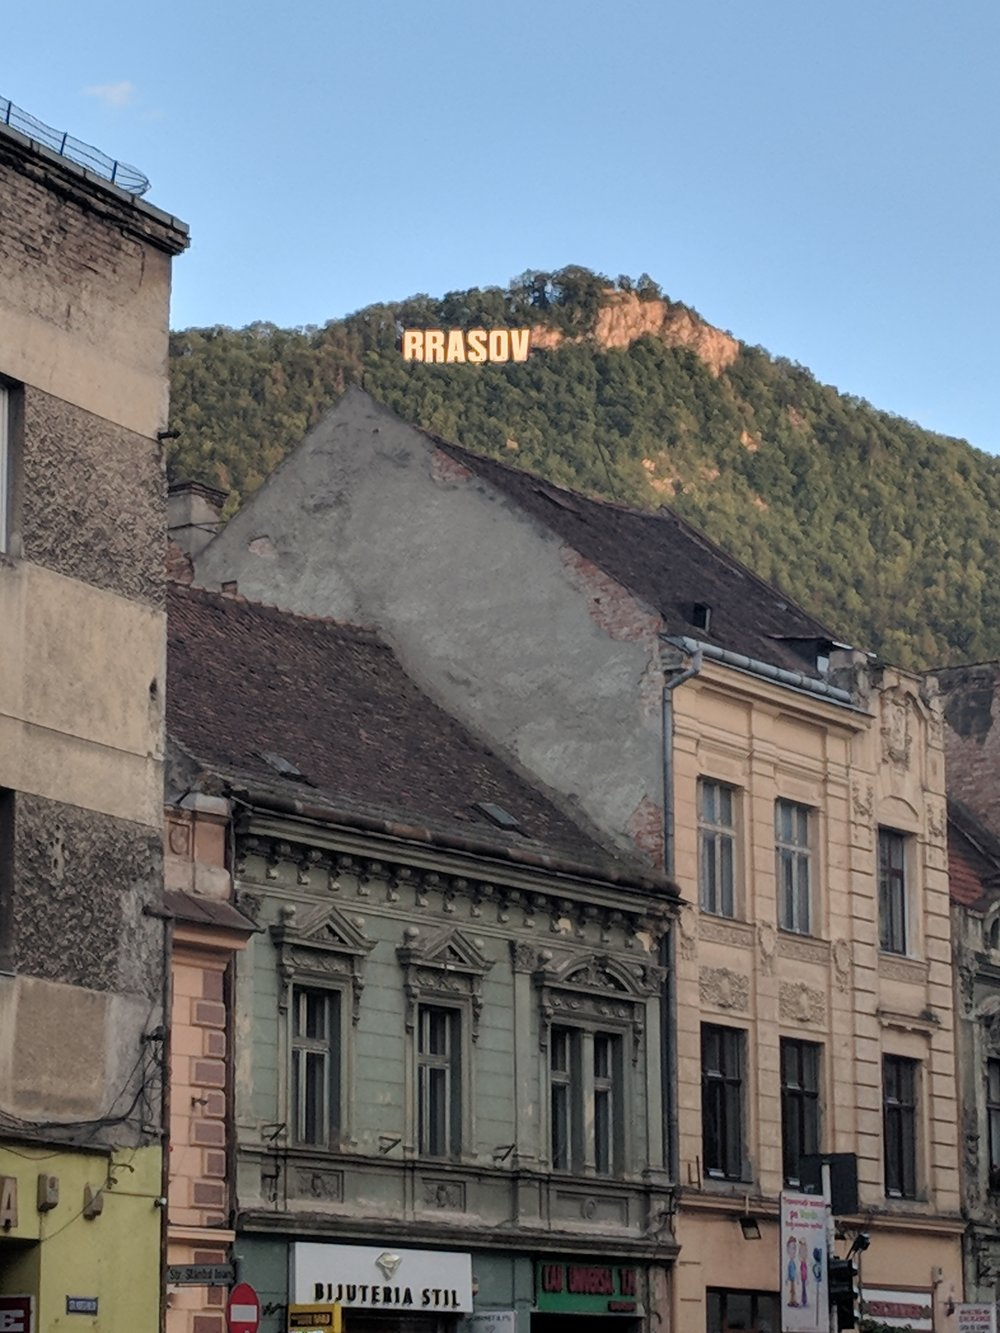 Our first glimpse of the famous Brasov sign